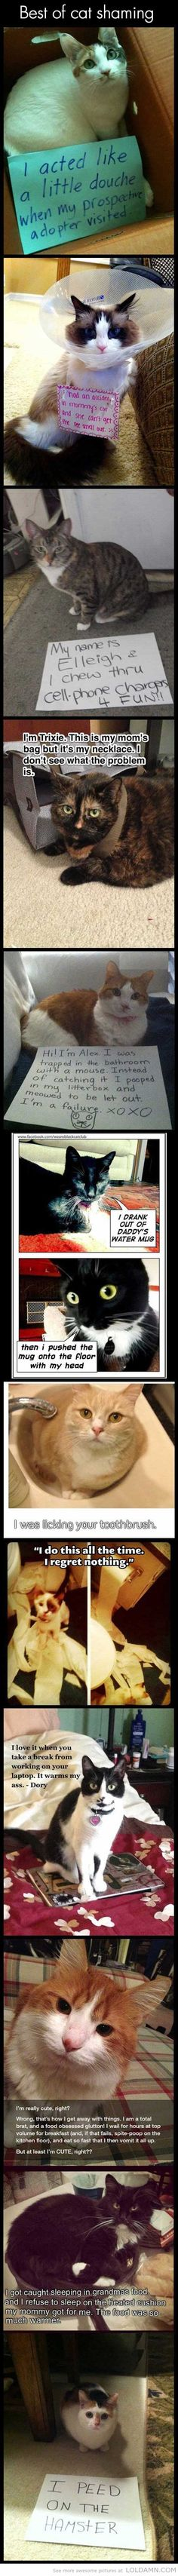 Funny cats: Best of cat shaming.... omg my cat is a pure Angel compared to these lil demons lol